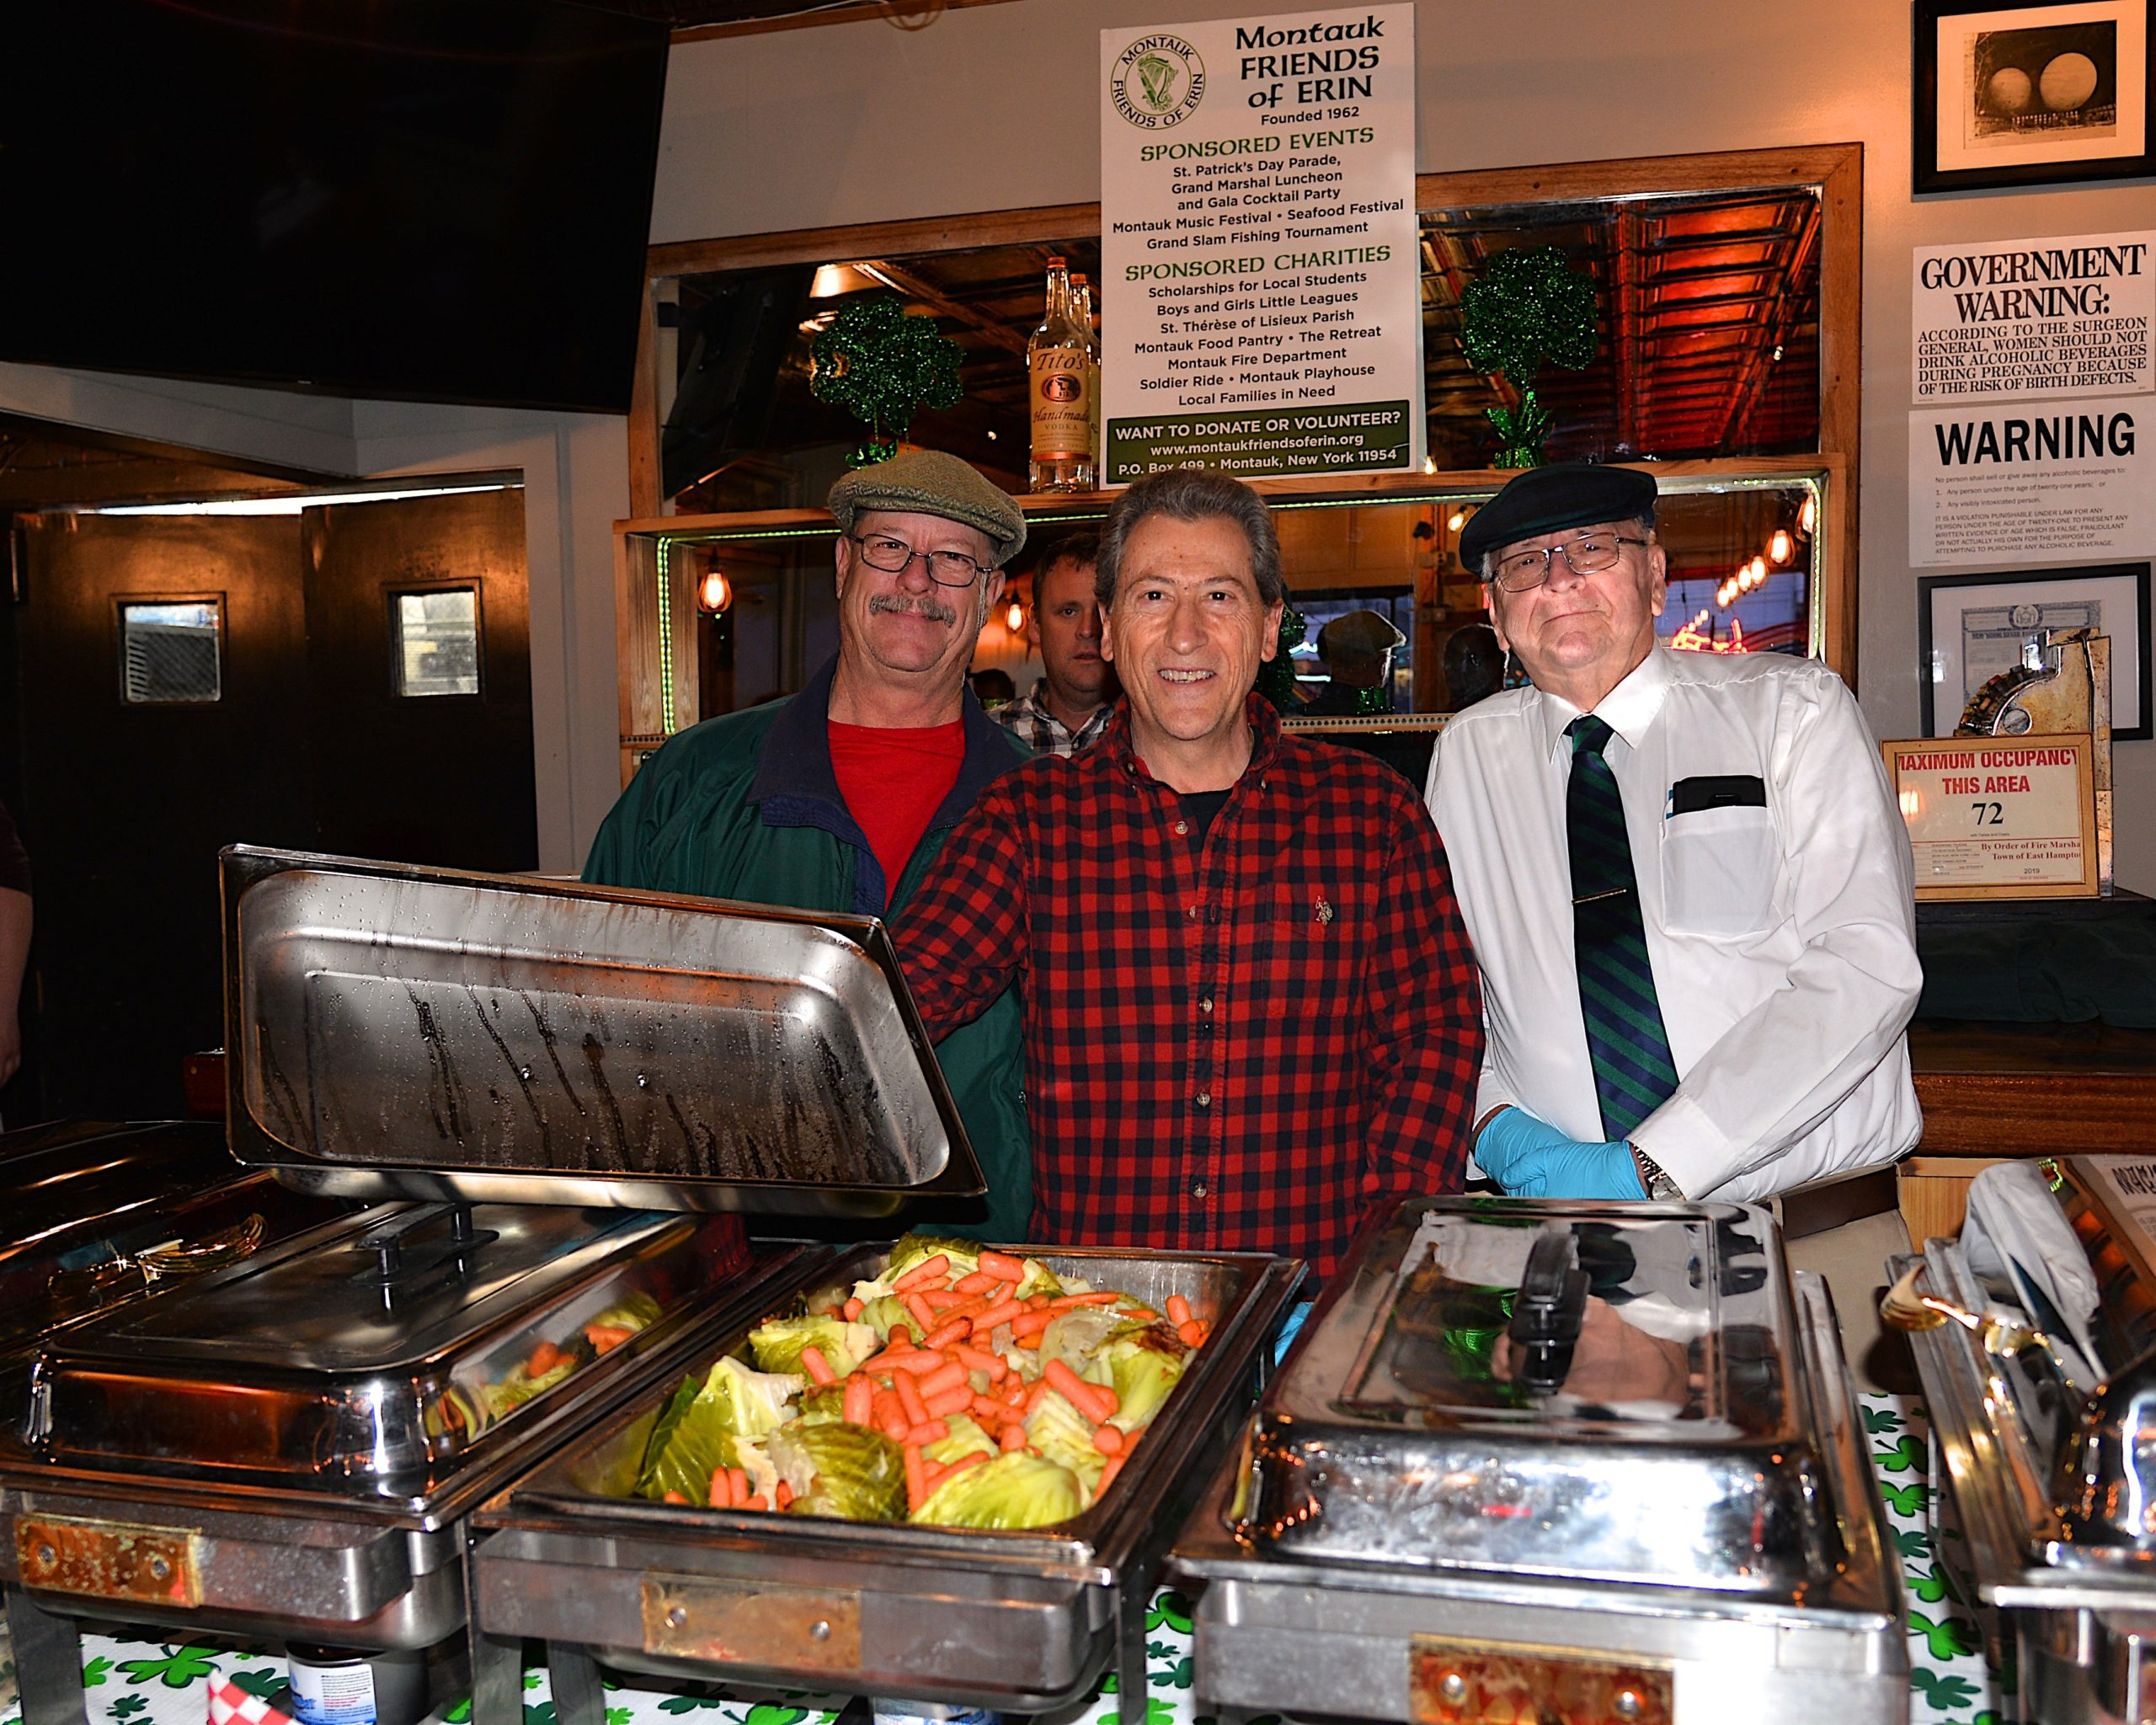 The Montauk Friends Of Erin held a corned beef and cabbage dinner at Shagwong Tavern on Saturday, at which Joe Bloecker, Paul Monte and Cliff Johnson were helping out. KYRIL BROMLEY